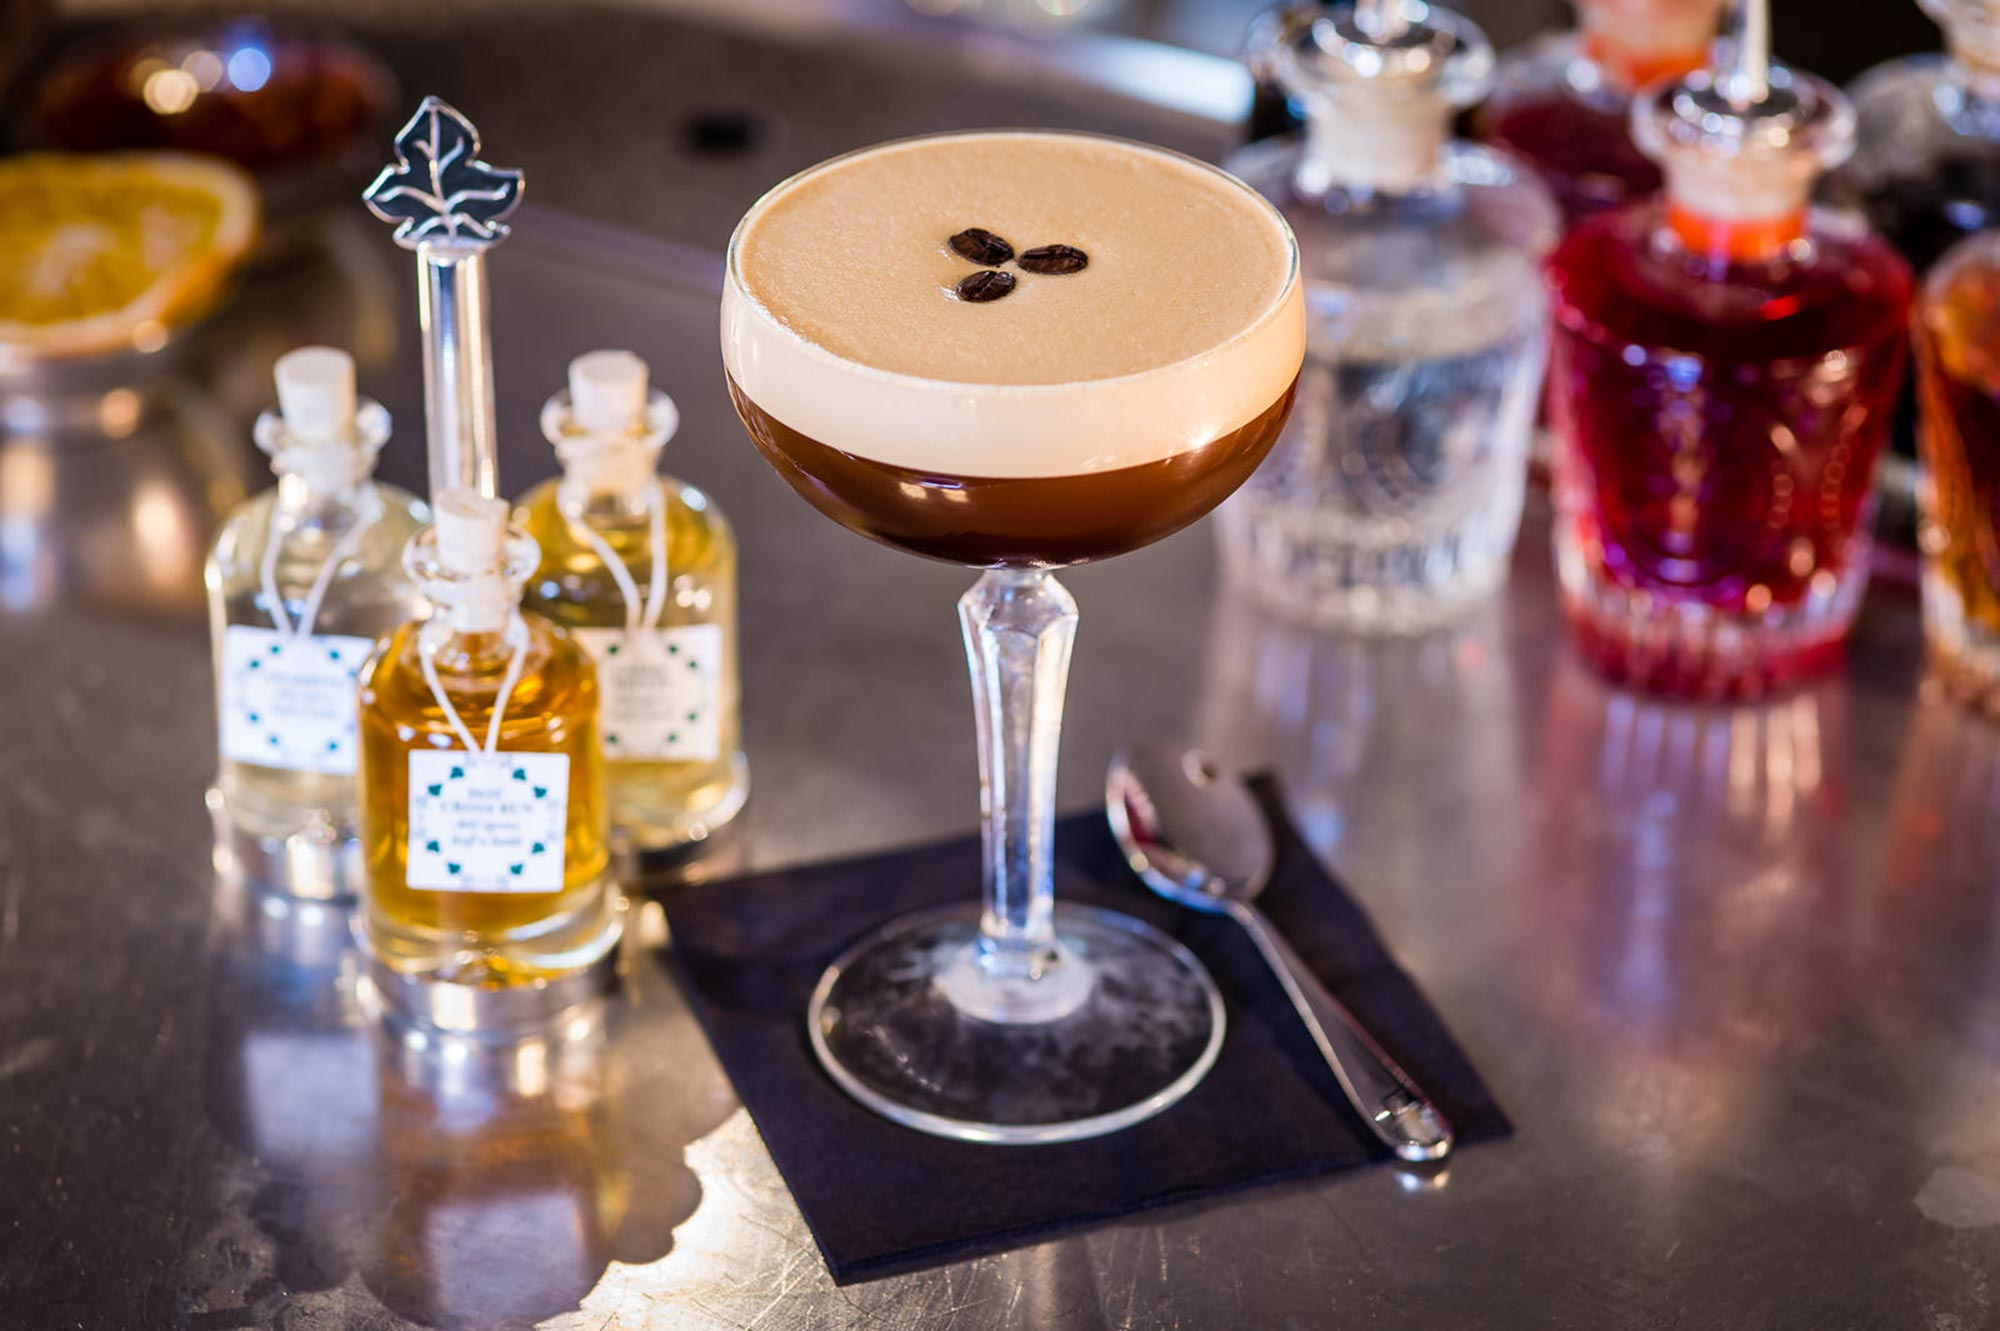 The Ivy Collection Espresso Martini and Infusions - The Ivy Harrogate